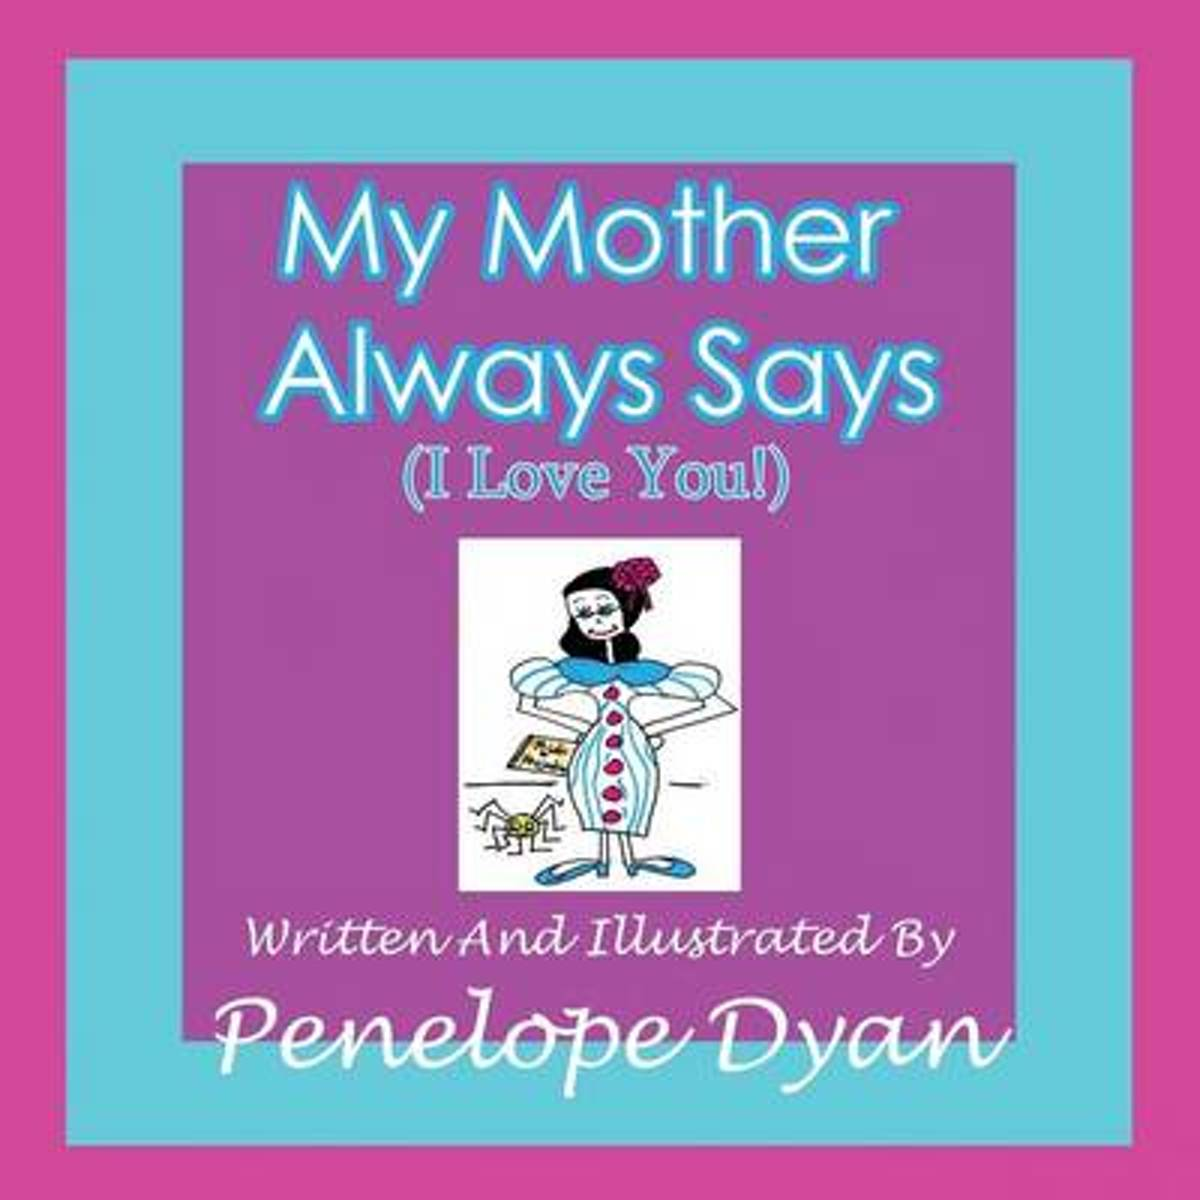 My Mother Always Says (I Love You!)